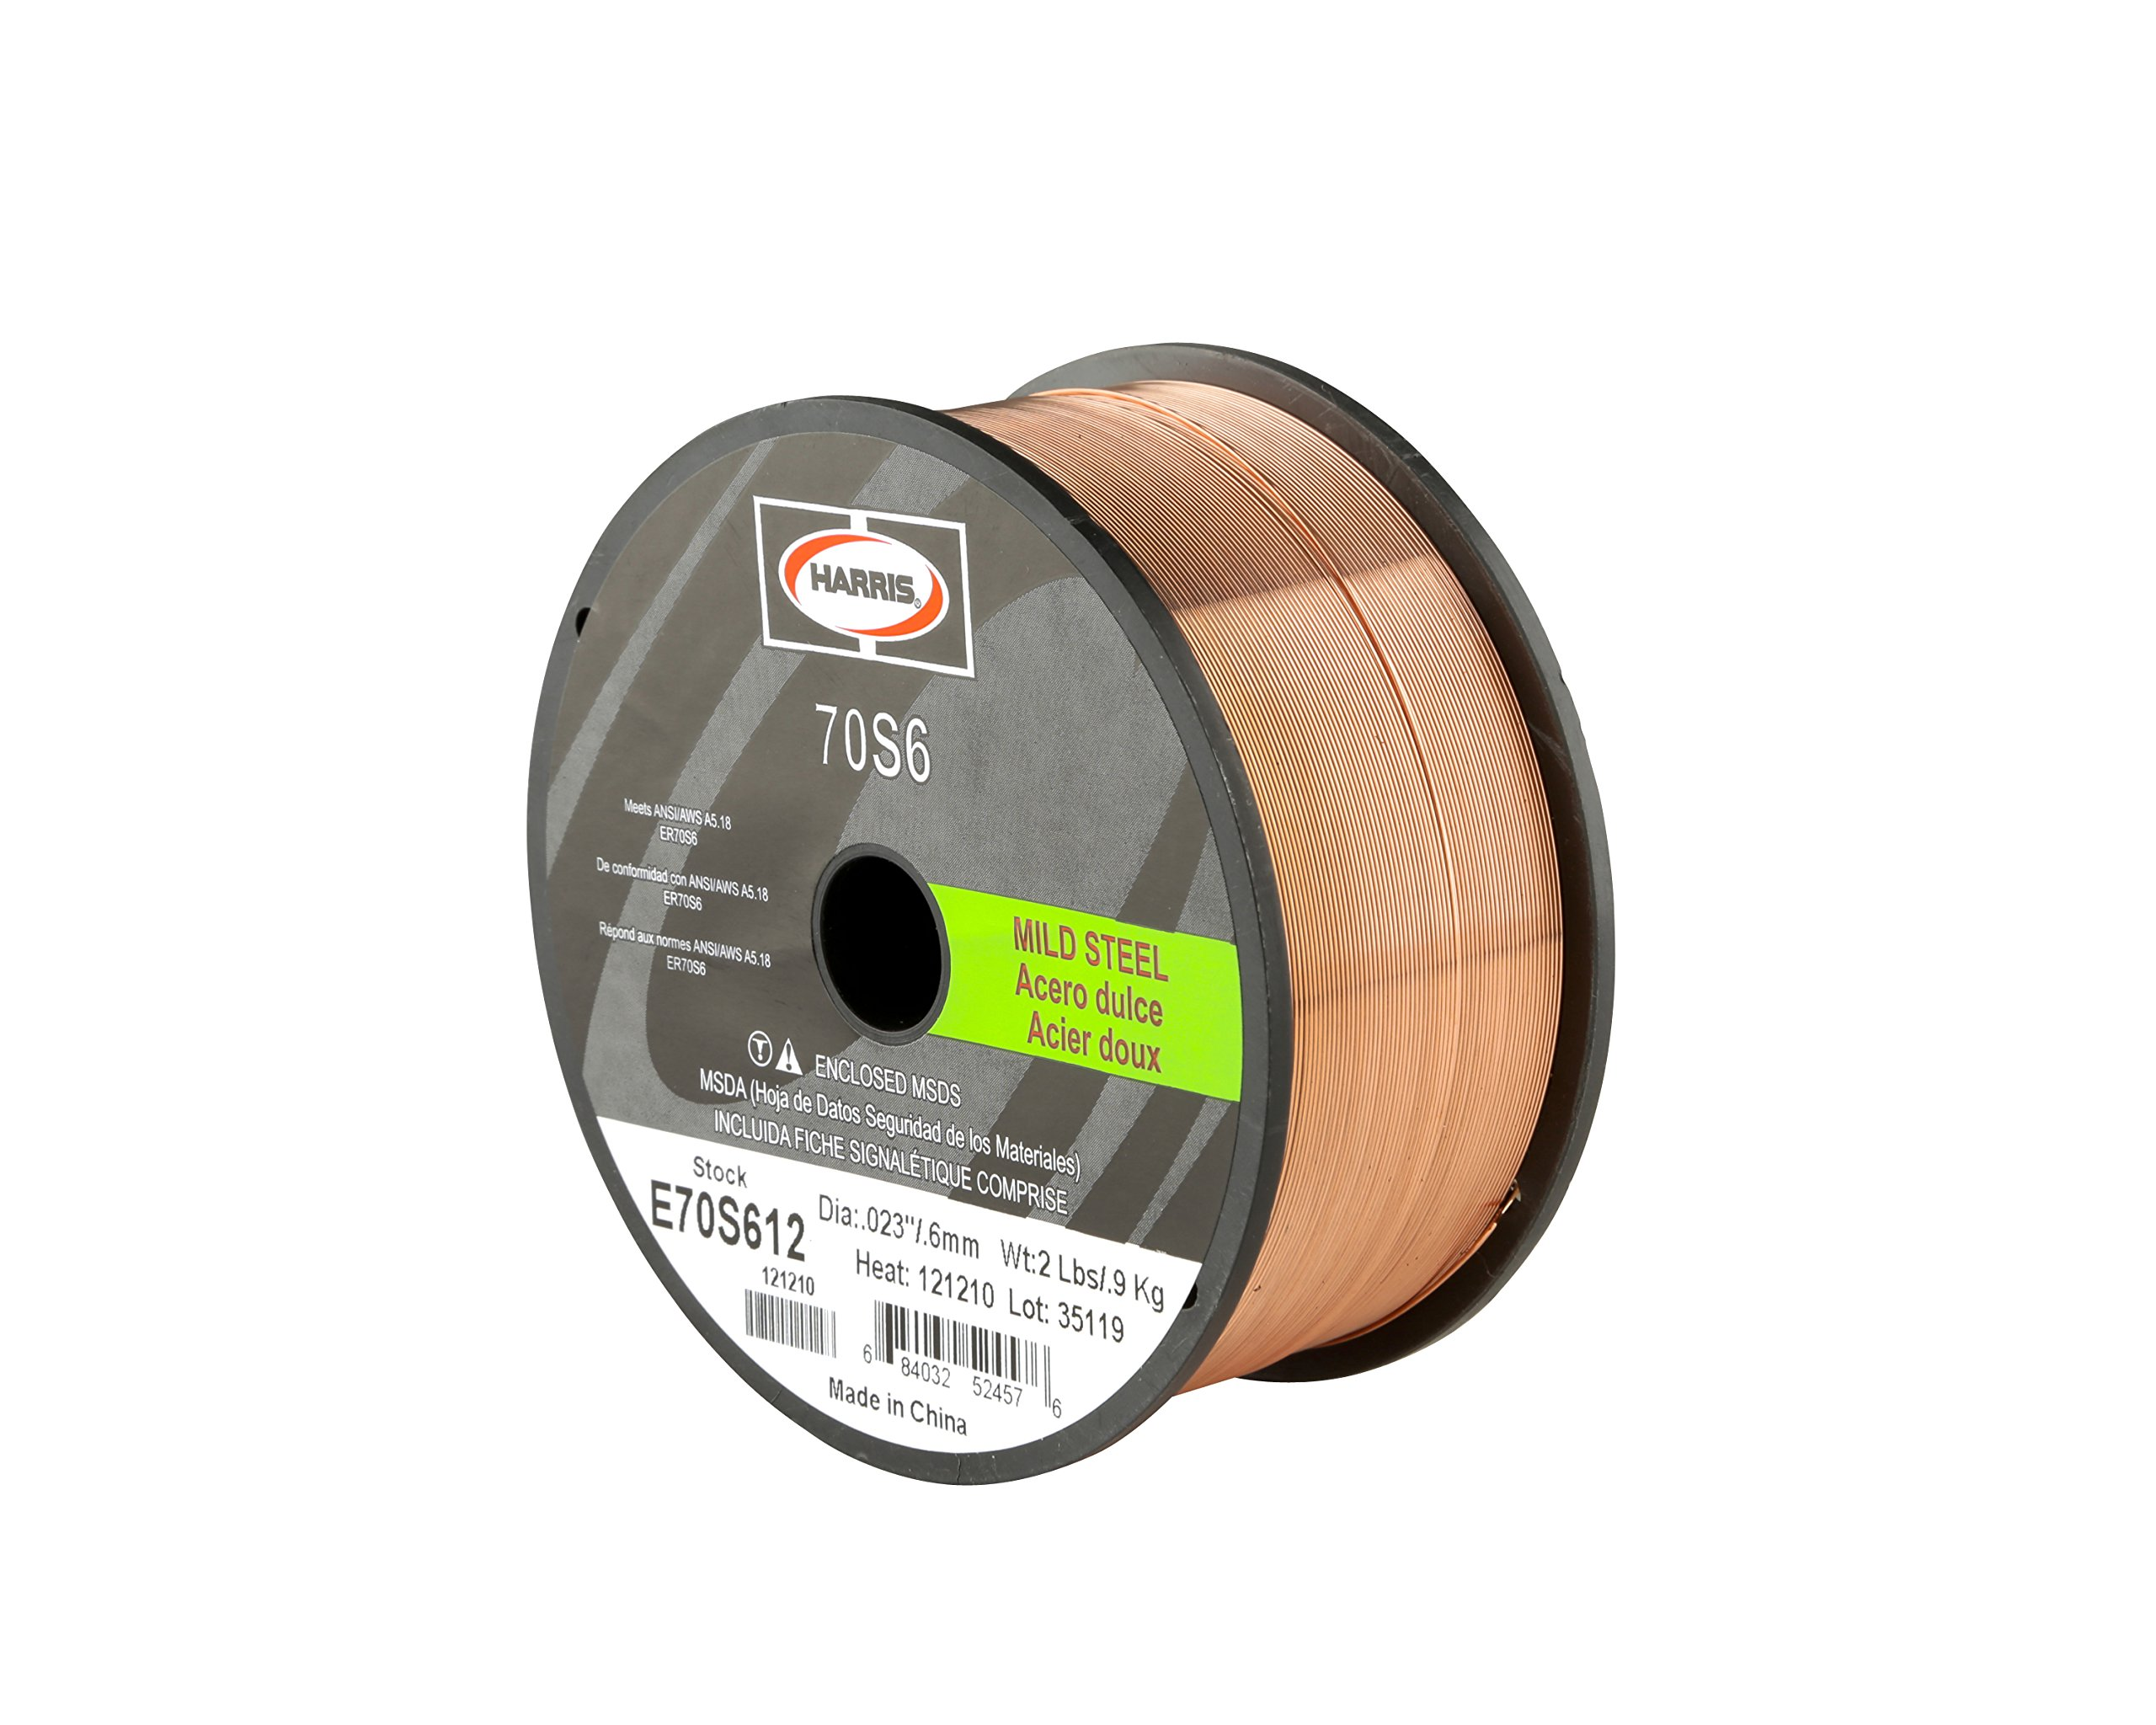 Harris E70S6F8 ER70S-6 MS Spool with Welding Wire, 0.035 lb. x 33 lb. by HARRIS